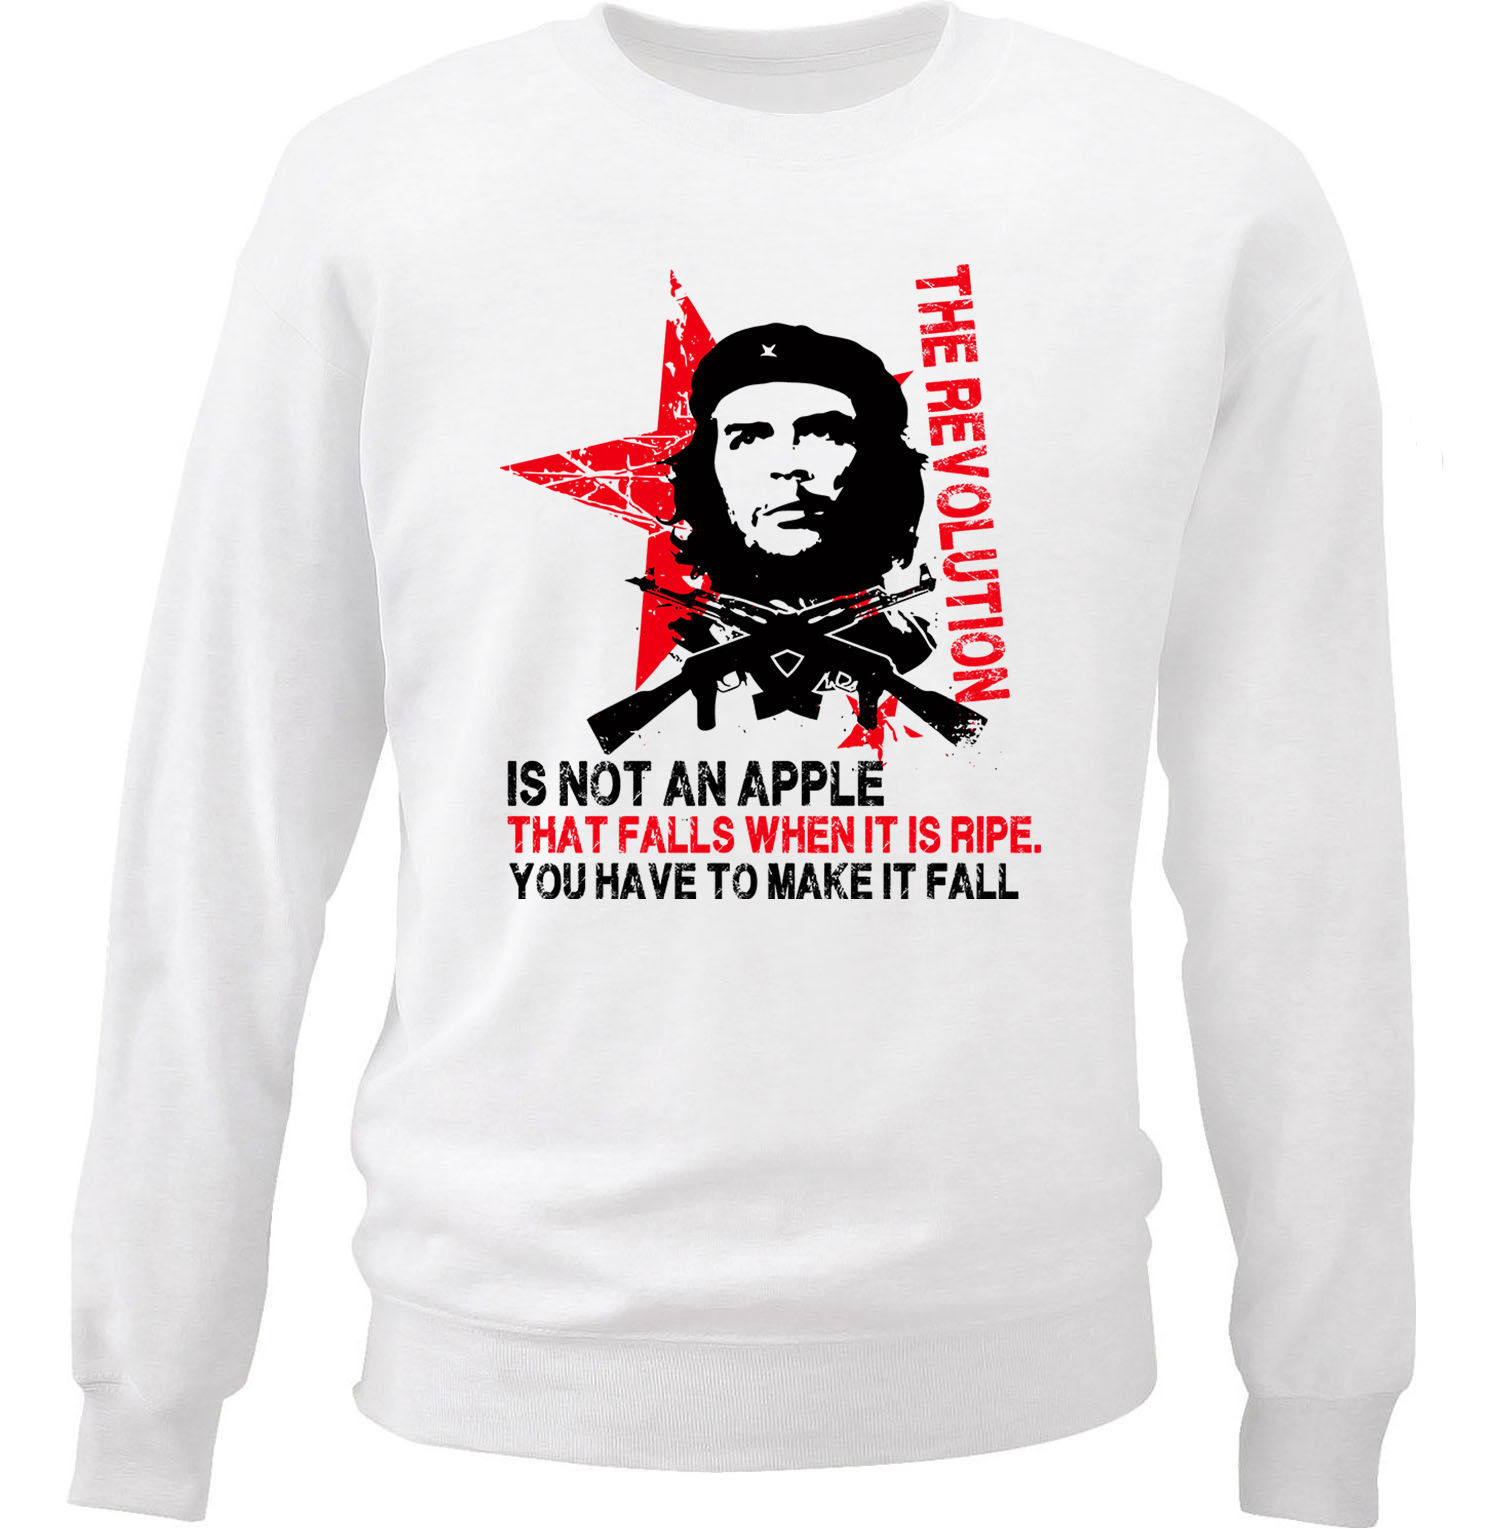 CHE GUEVARA AN APPLE QUOTE - NEW WHITE COTTON SWEATSHIRT